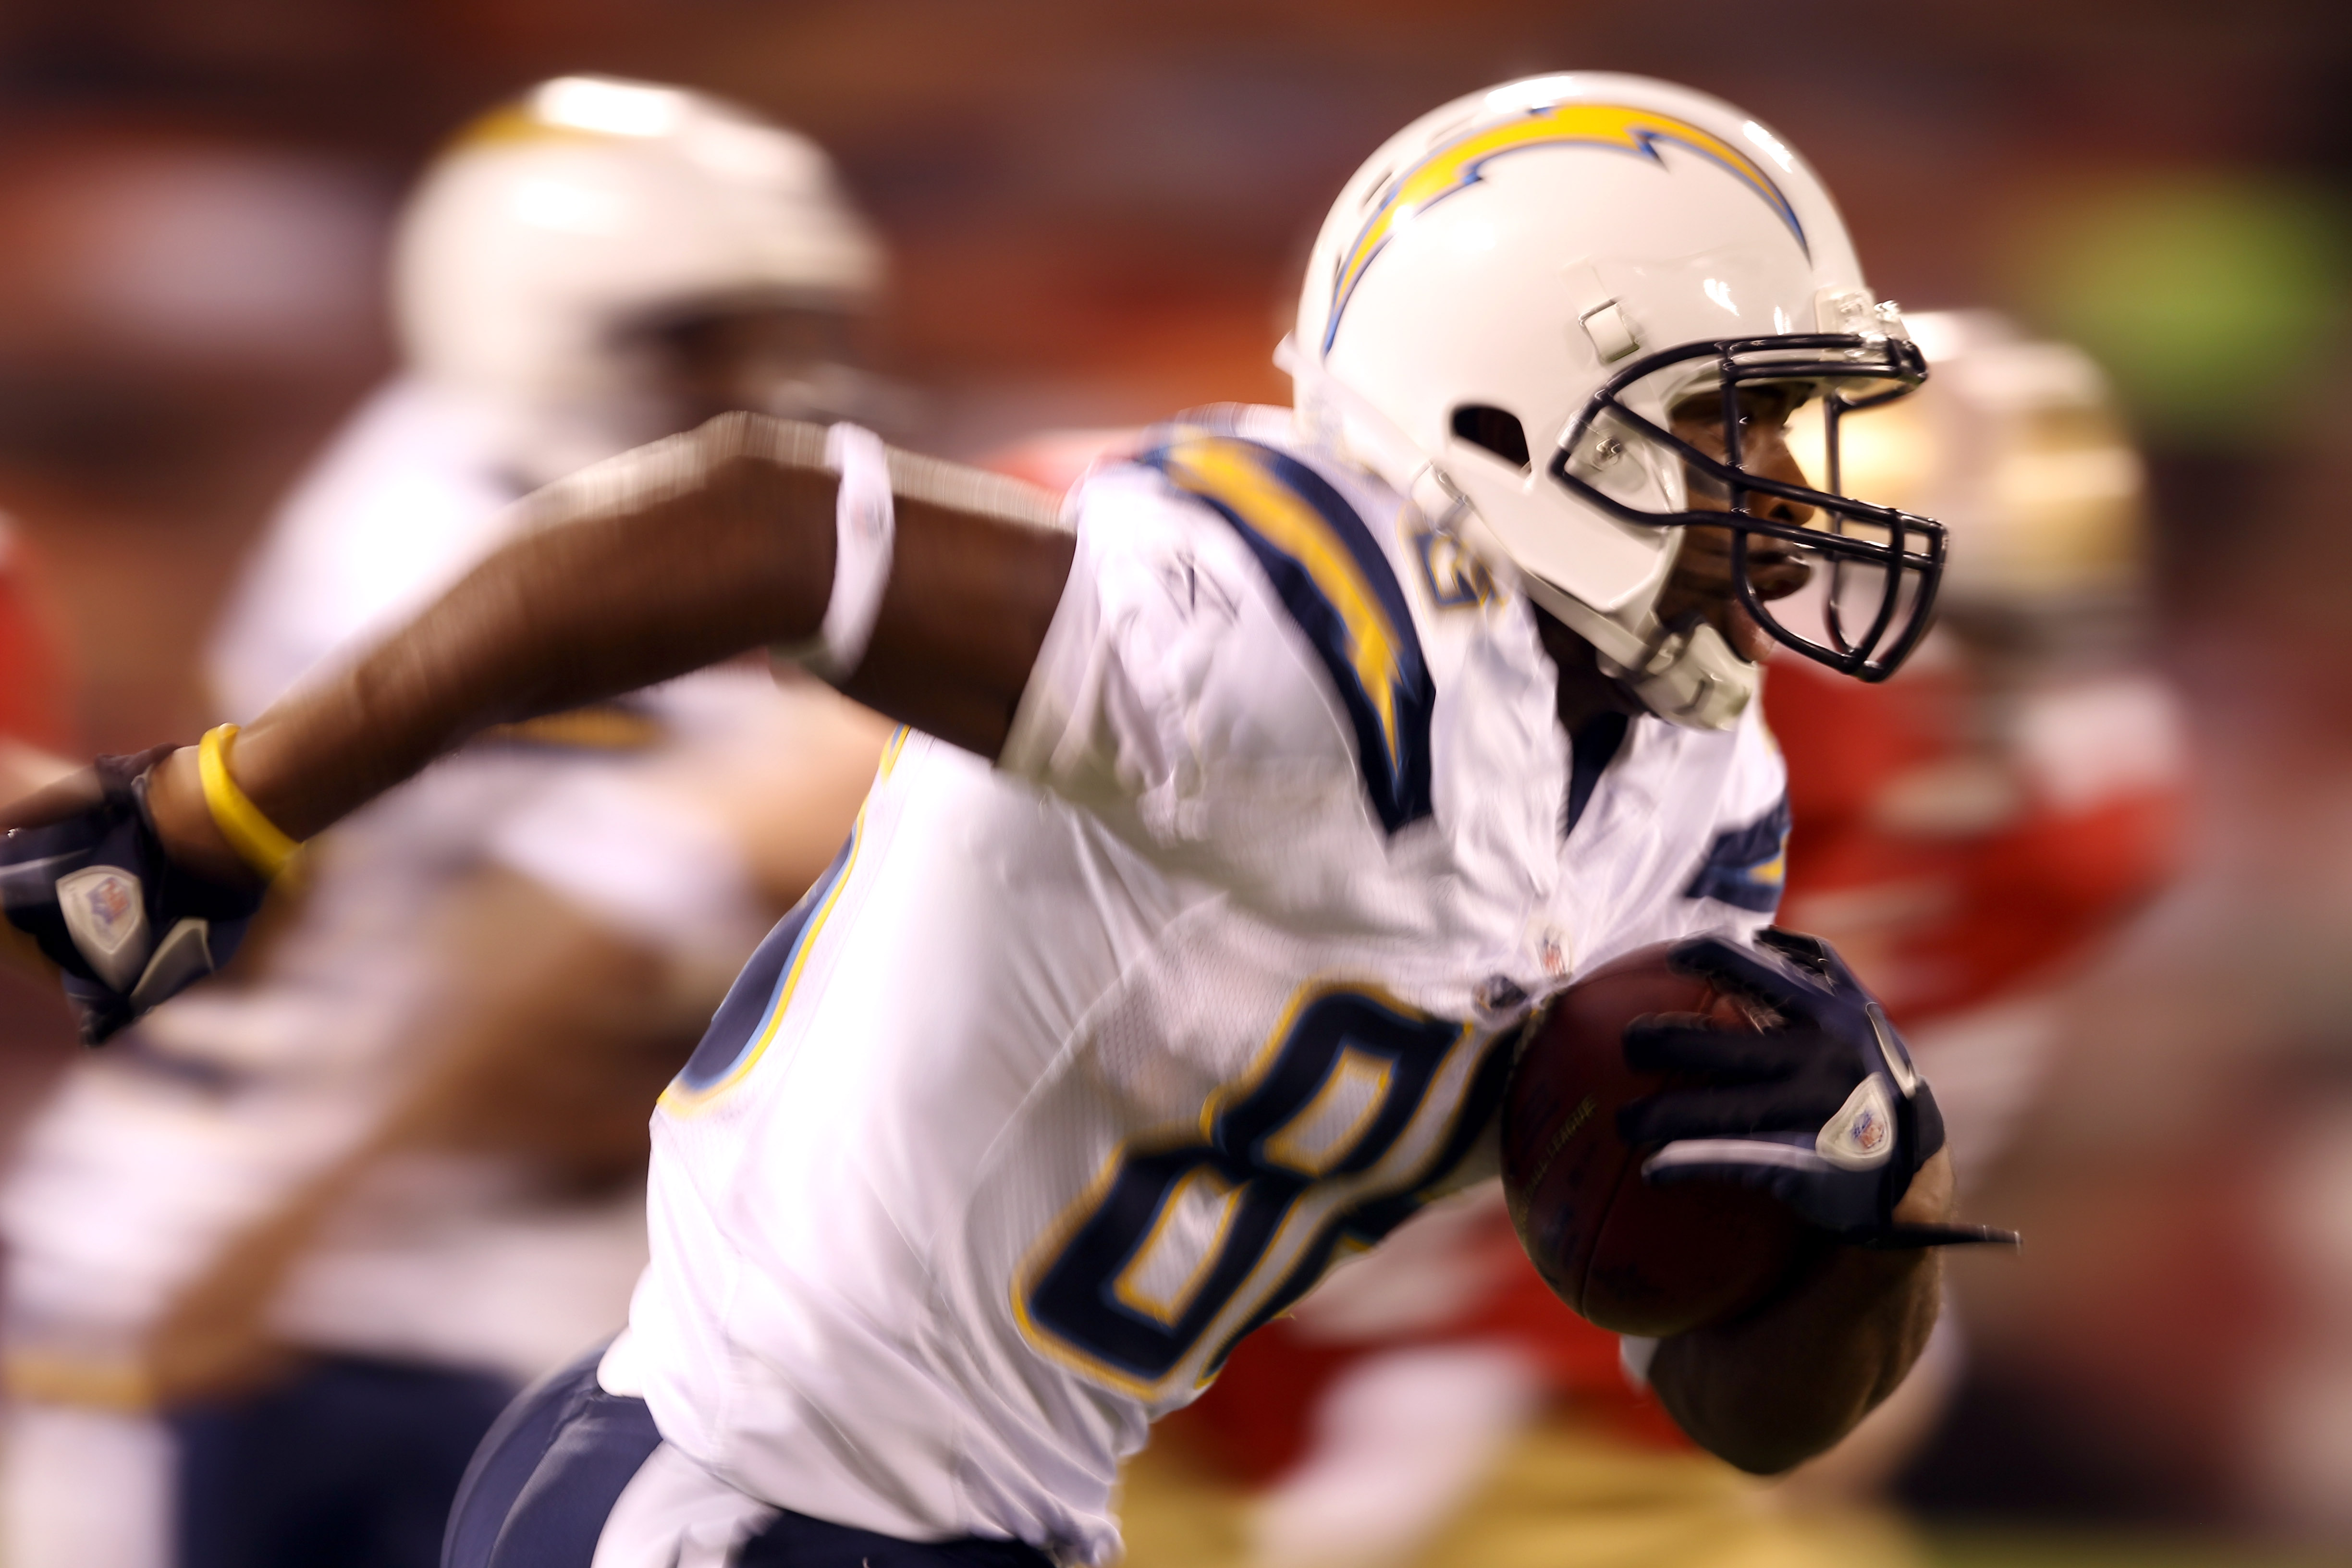 SAN FRANCISCO - SEPTEMBER 02:  Jeremy Williams #86 of the San Diego Chargers runs with the ball on his way to scoring a touchdown during their game against the San Francisco 49ers at Candlestick Park  on September 2, 2010 in San Francisco, California.  (P